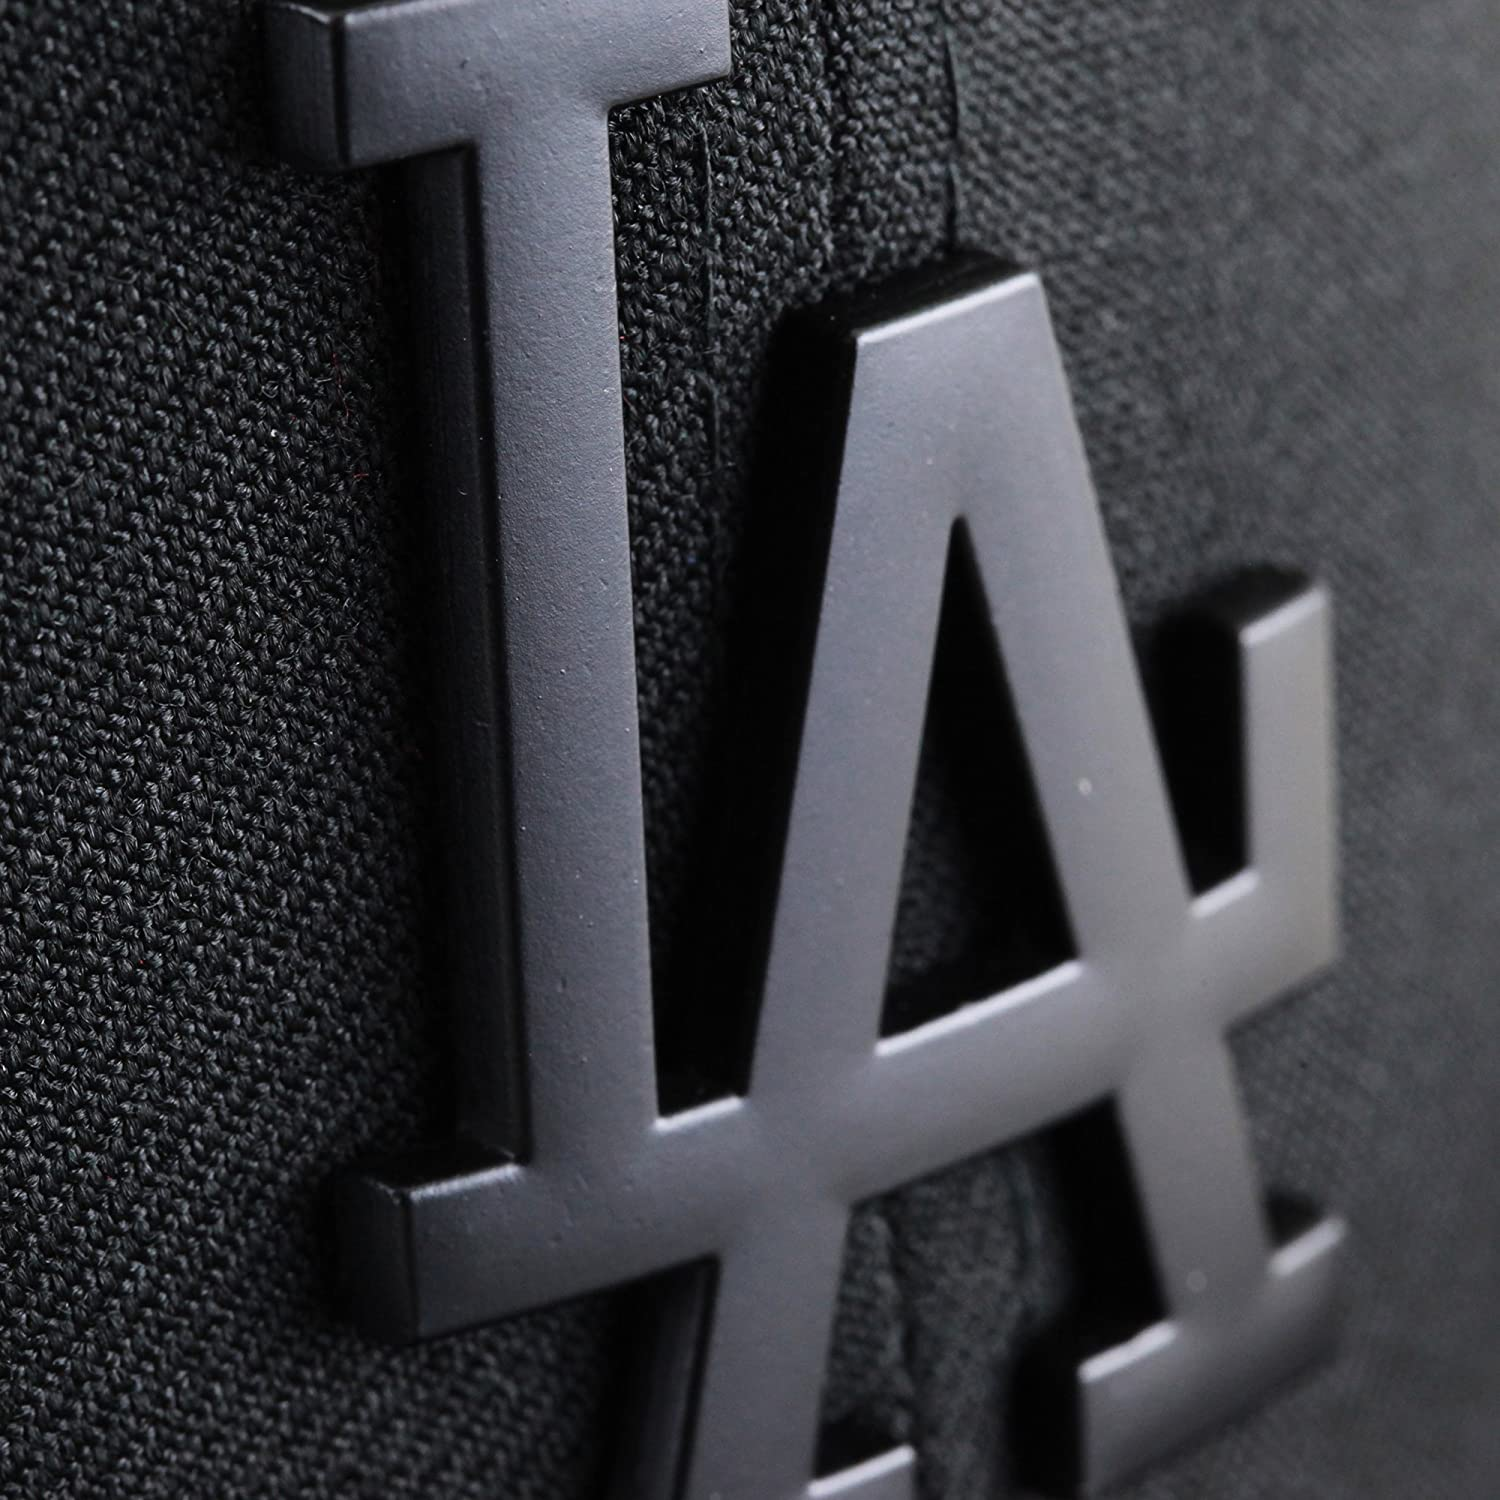 Los angeles dodgers black on black cap with black metal logo by los angeles dodgers black on black cap with black metal logo by new era 9fifty at amazon mens clothing store buycottarizona Image collections